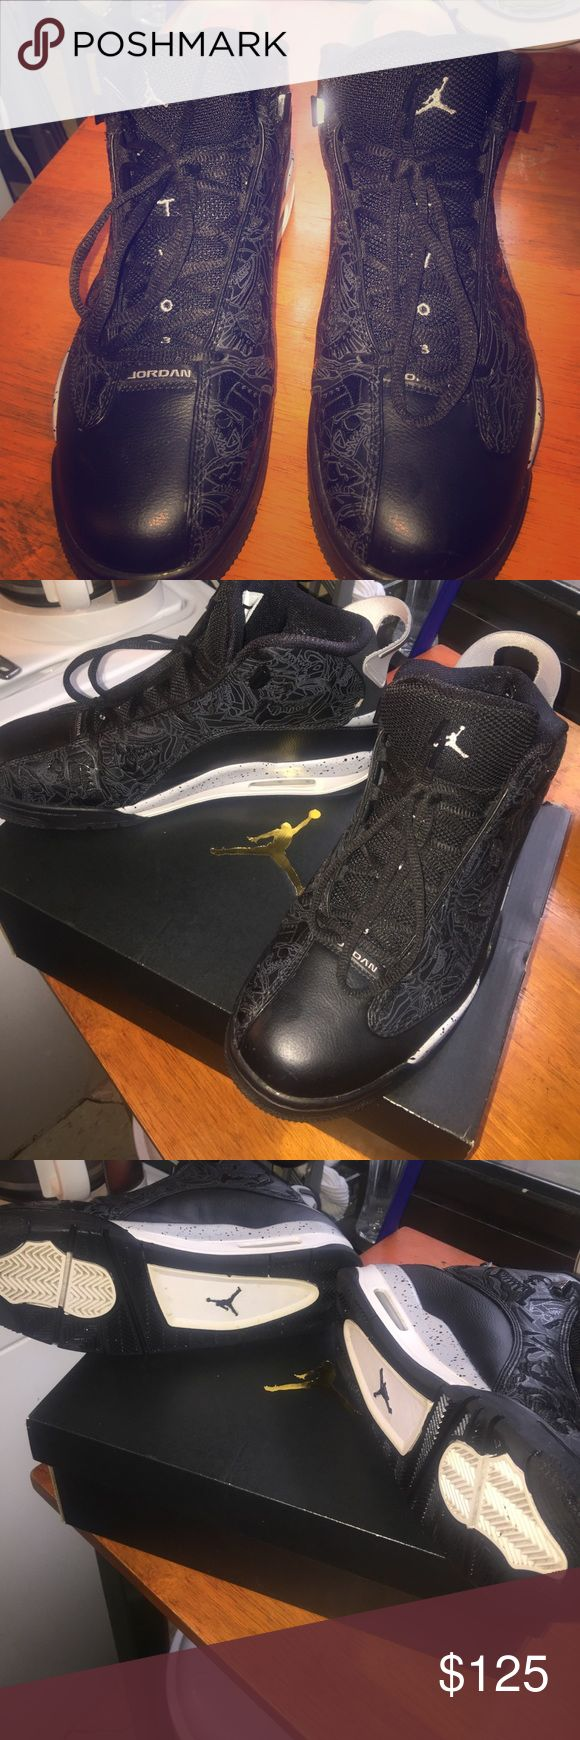 It was a gift and it's not really my style of shoe Very Comfy sneakers Jordan Dub Zero's only used about 3 good times I prefer to sell and give to someone who is in need to rather toss them their kinda not really my style I'm more of an expensive type of guy lol if you have Giuseppe Zanotti Sneakers now we're talkin Jordan Shoes Sneakers